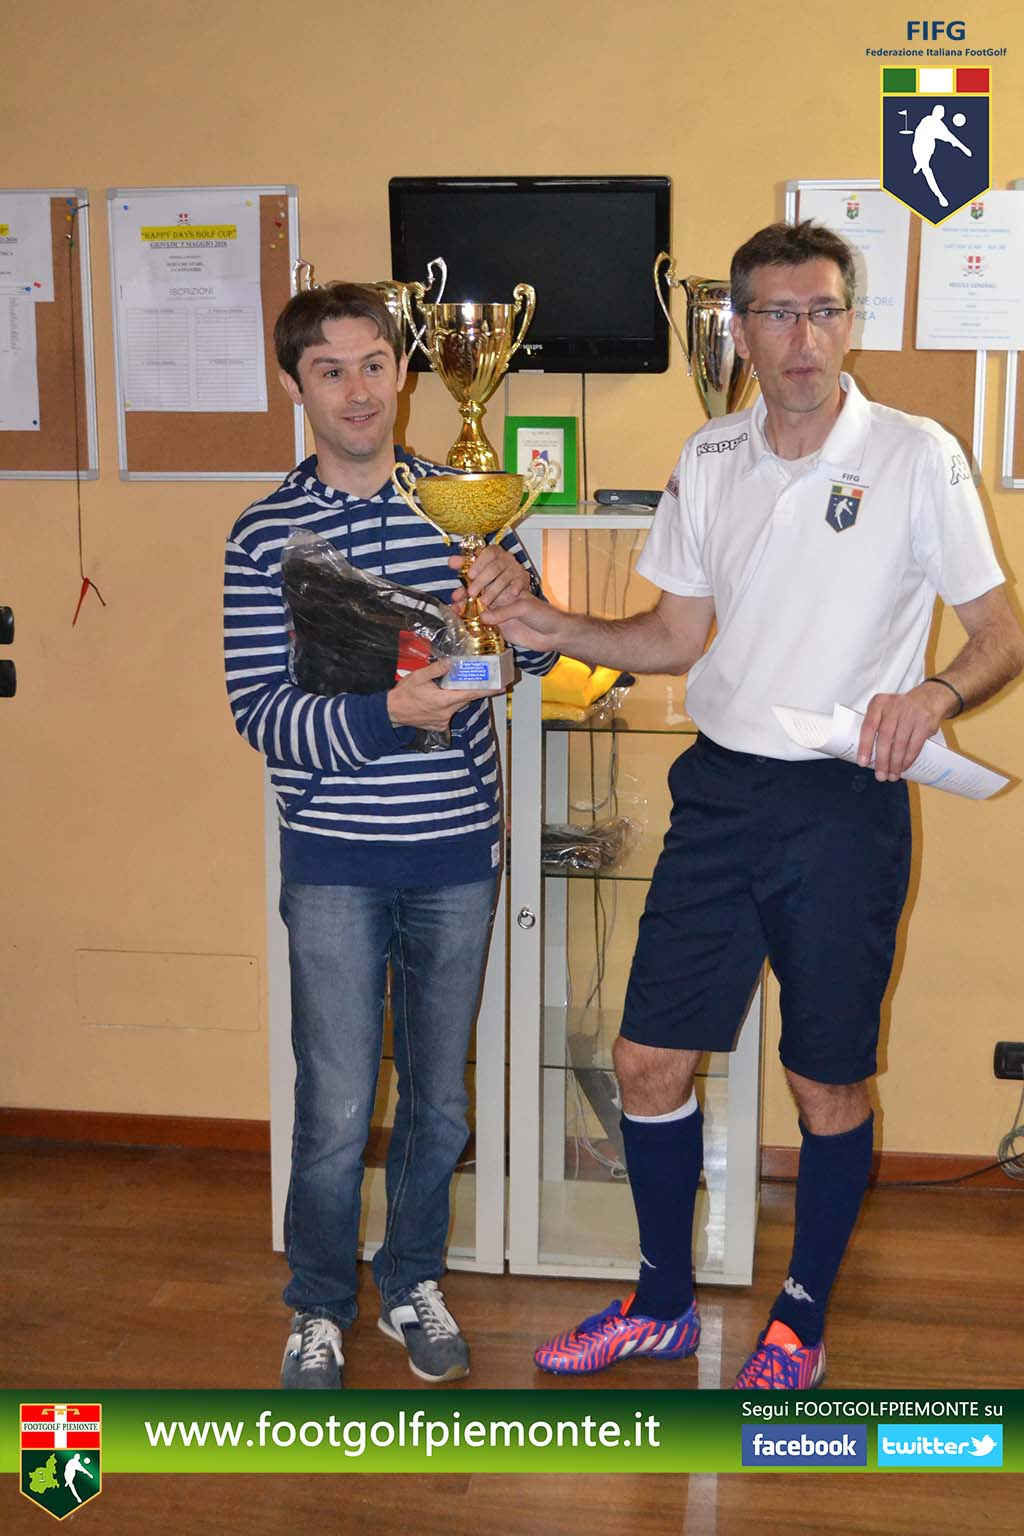 FOTO 9 Regions' Cup Footgolf Piemonte 2016 Golf Città di Asti (At) 30apr16-127